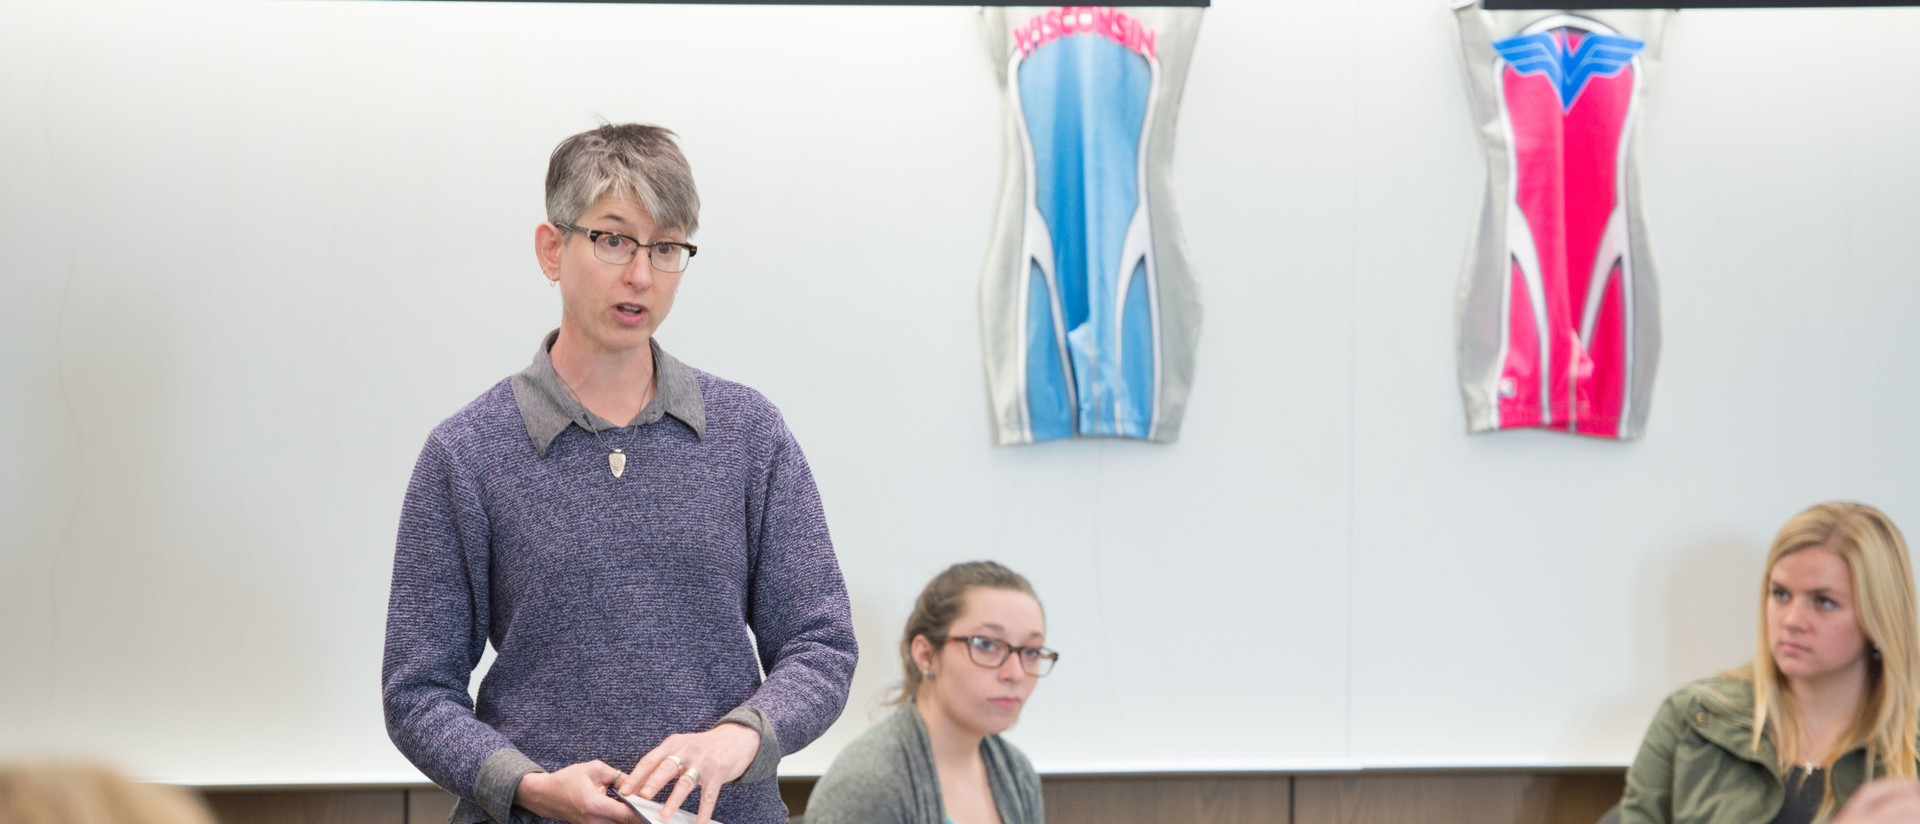 Dr. Forman in classroom